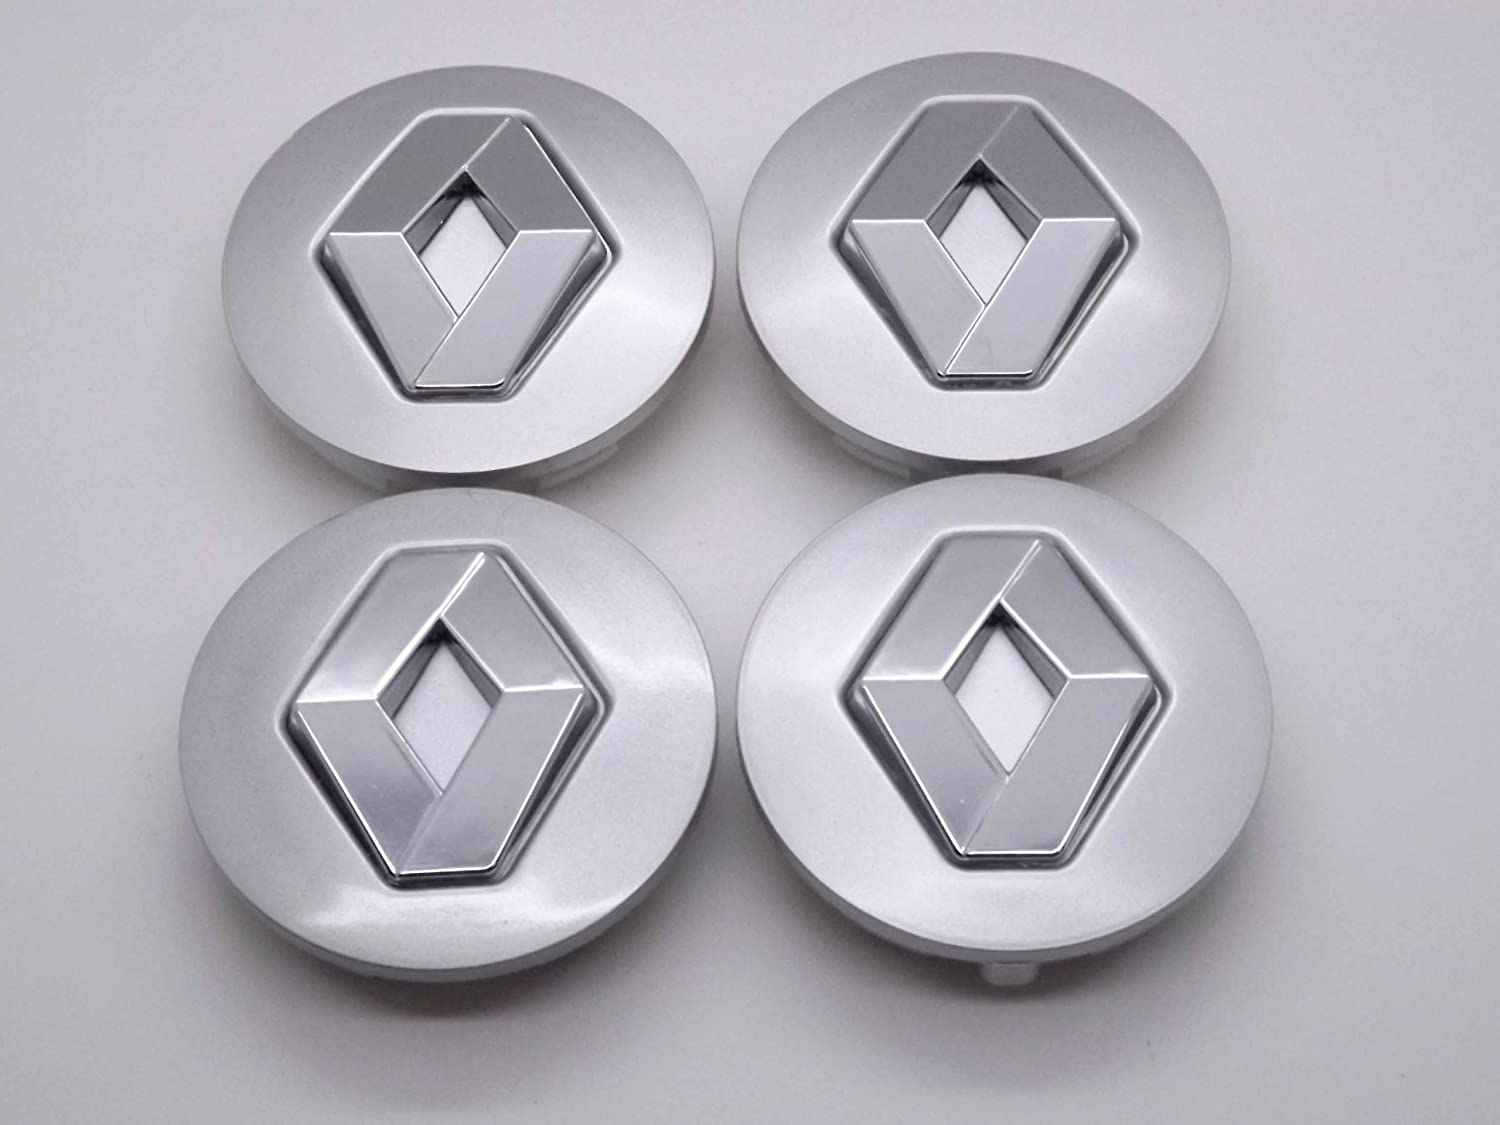 LAGUNA ESPACE 57mm RENAULT 57MM ALLOY WHEEL CENTRE CAPS HUB COVERS BADGES EMBLEM // Nabendeckel Felgendeckel Nabenkappen Logo MEGANE SCENIC CLIO SET OF 4 8200043899 SATZ VON 4